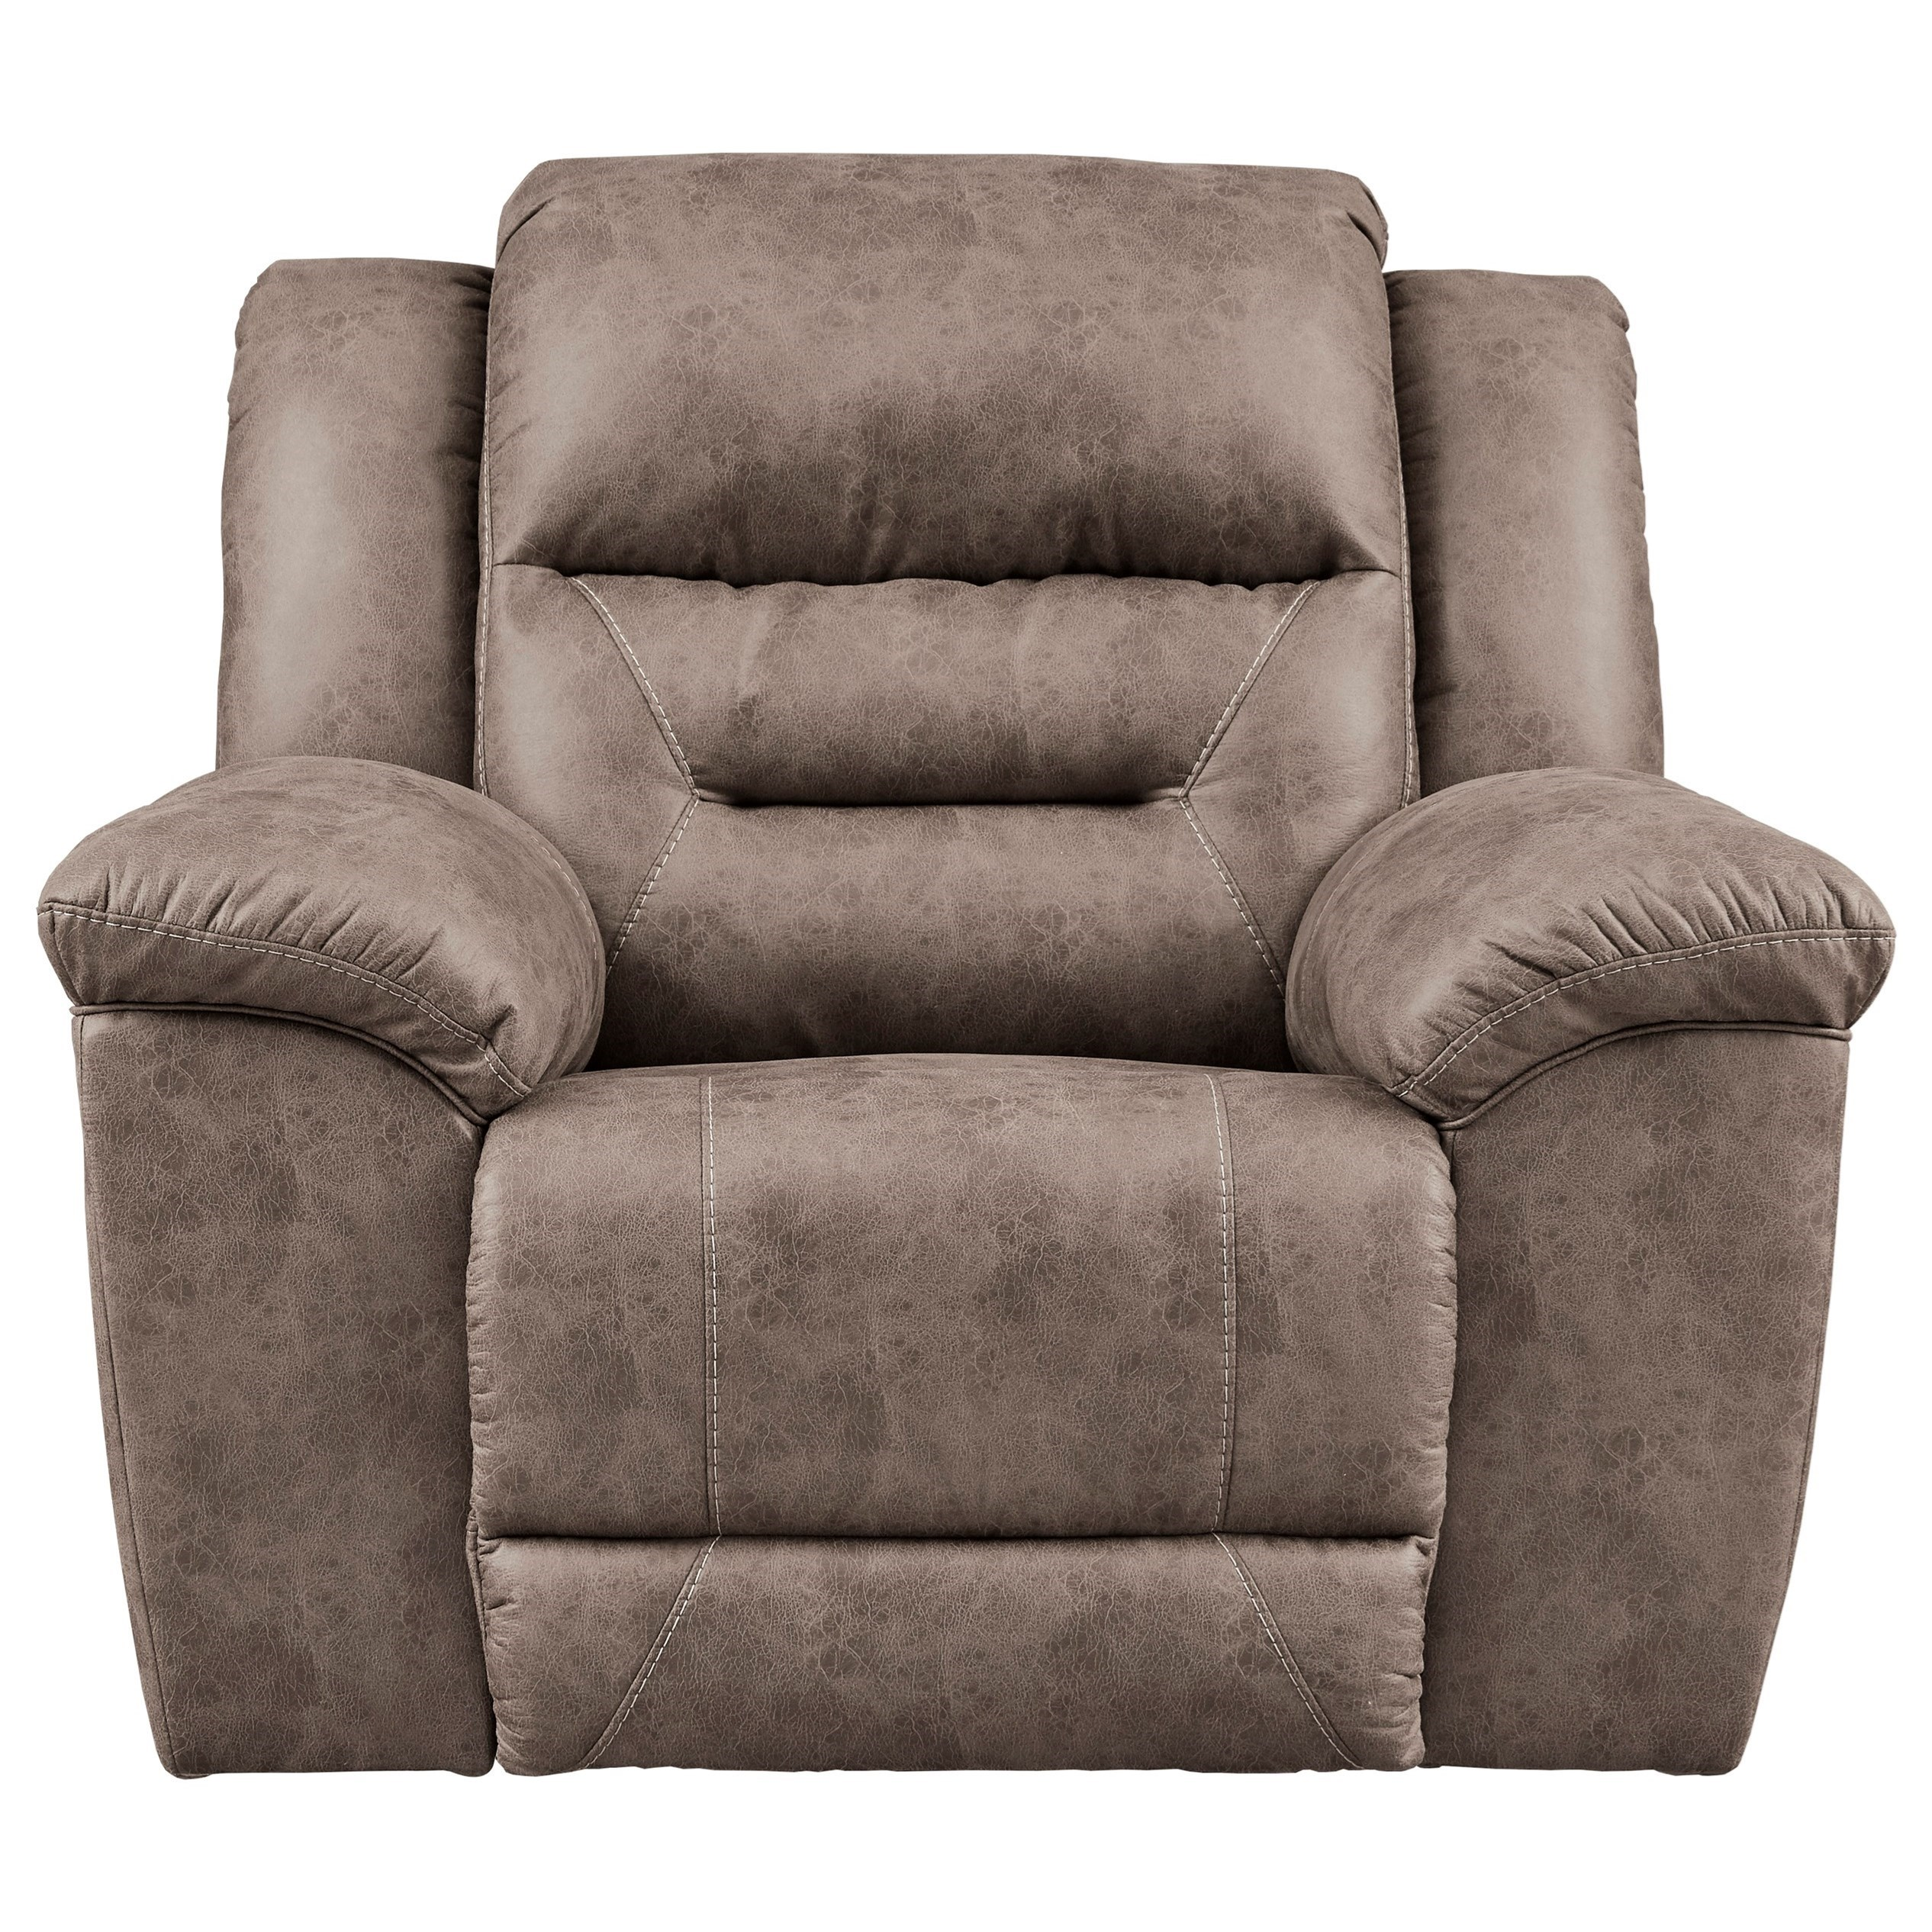 Stoneland Power Rocker Recliner by Signature Design by Ashley at Furniture Barn